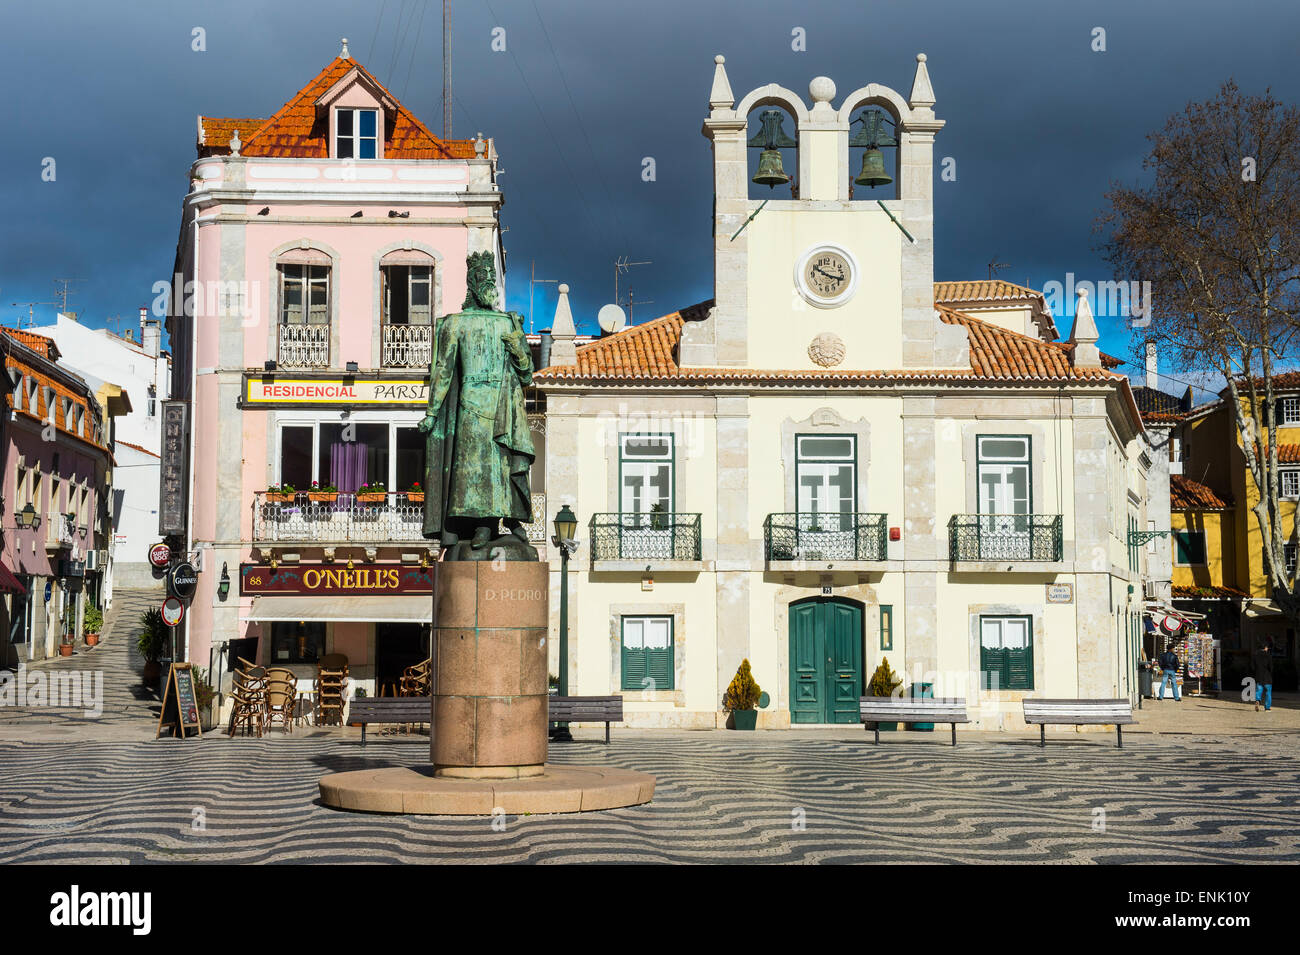 Seafront Passeio Dom Luis, in the seaside town of Cascais, Portugal, Europe - Stock Image